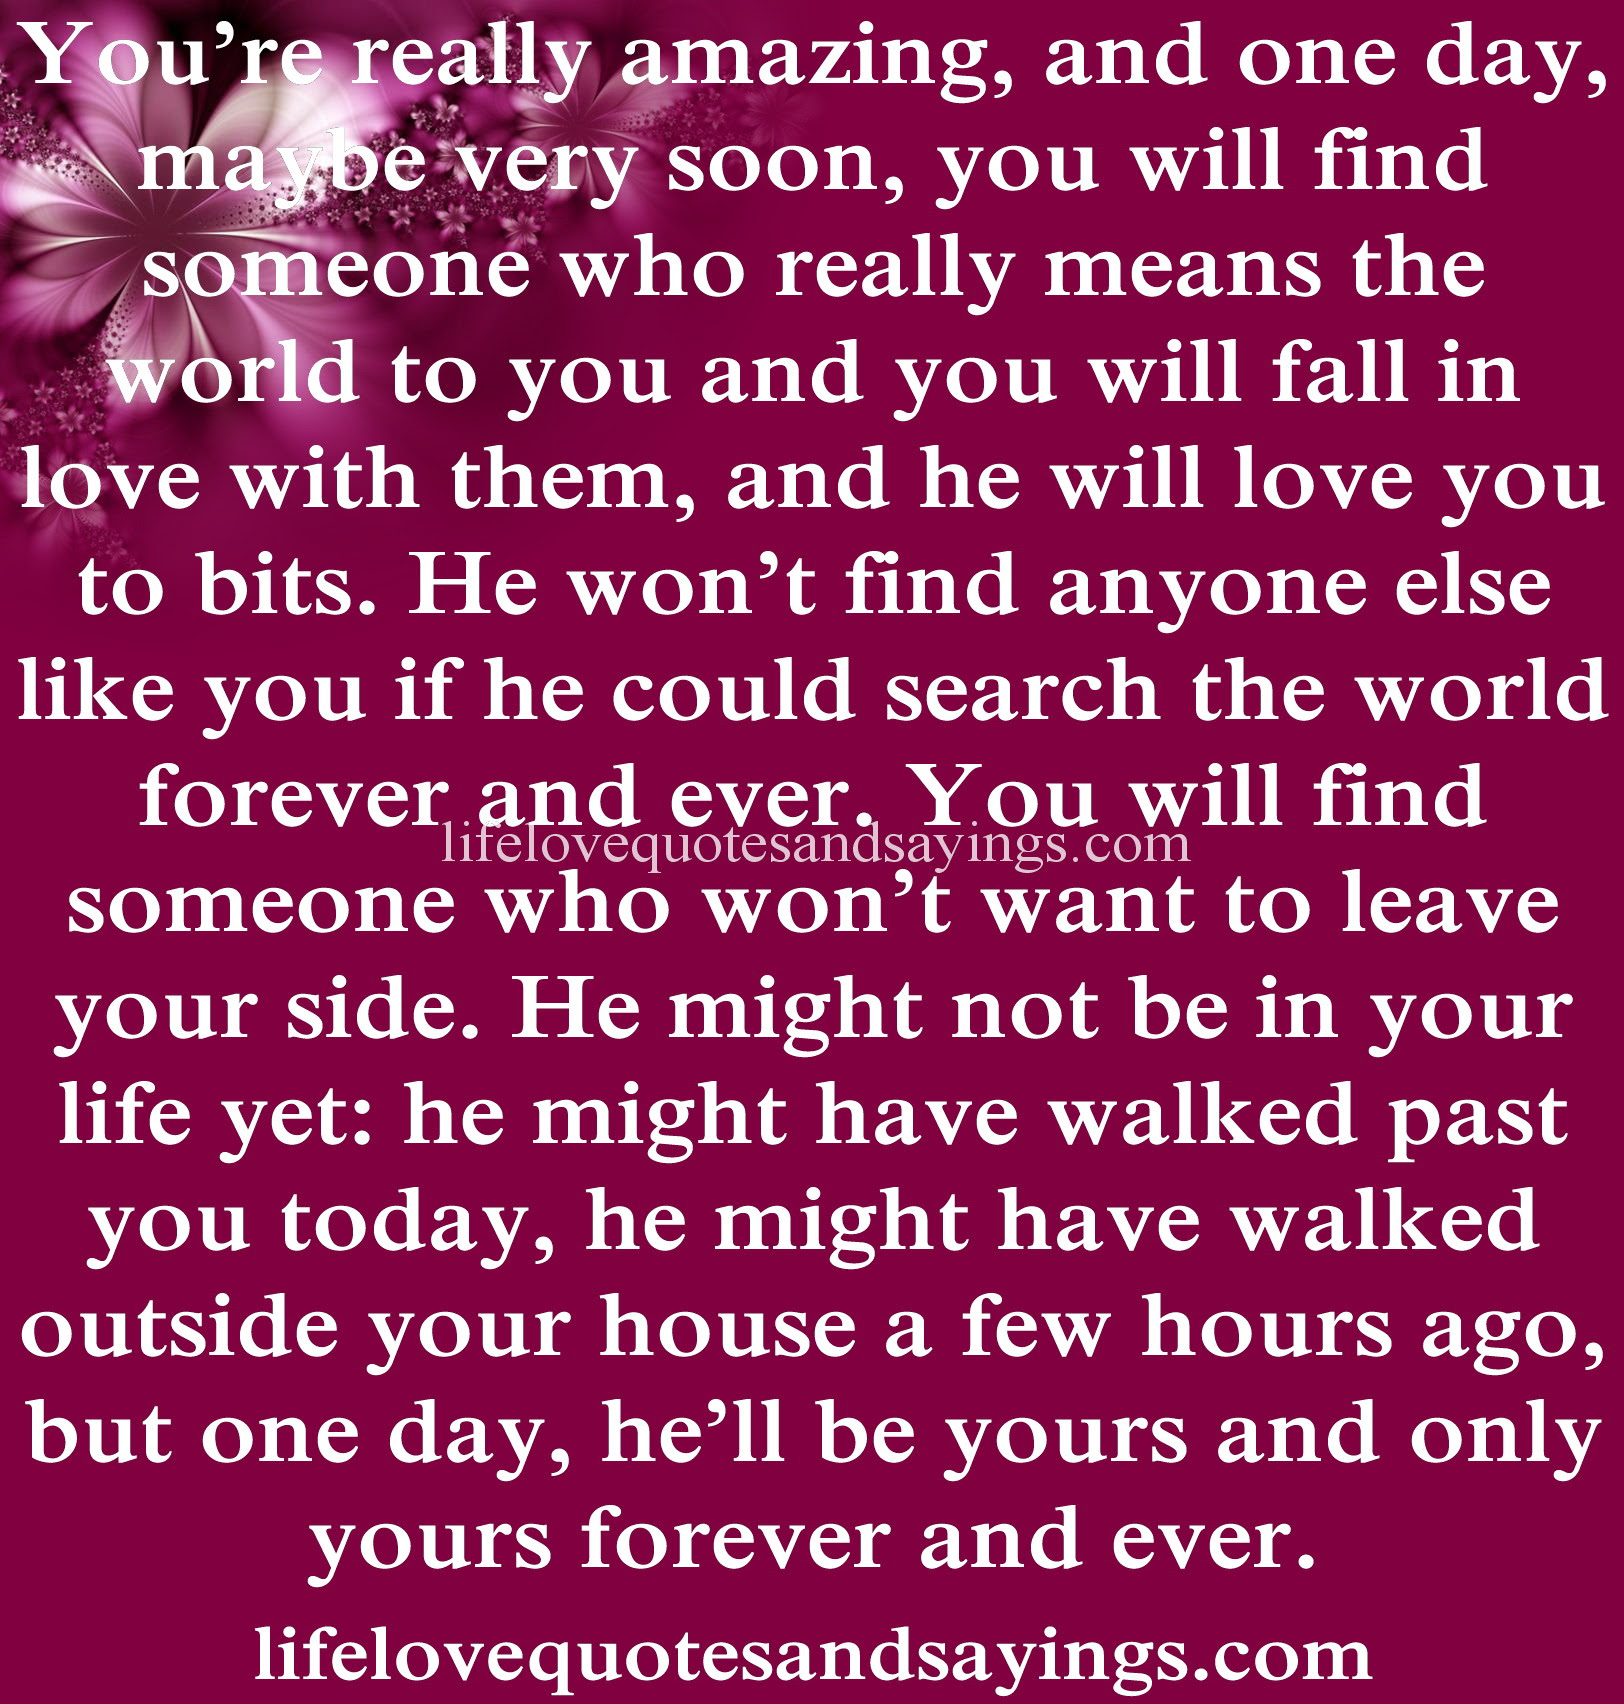 Quotes About Amazing Love 207 Quotes